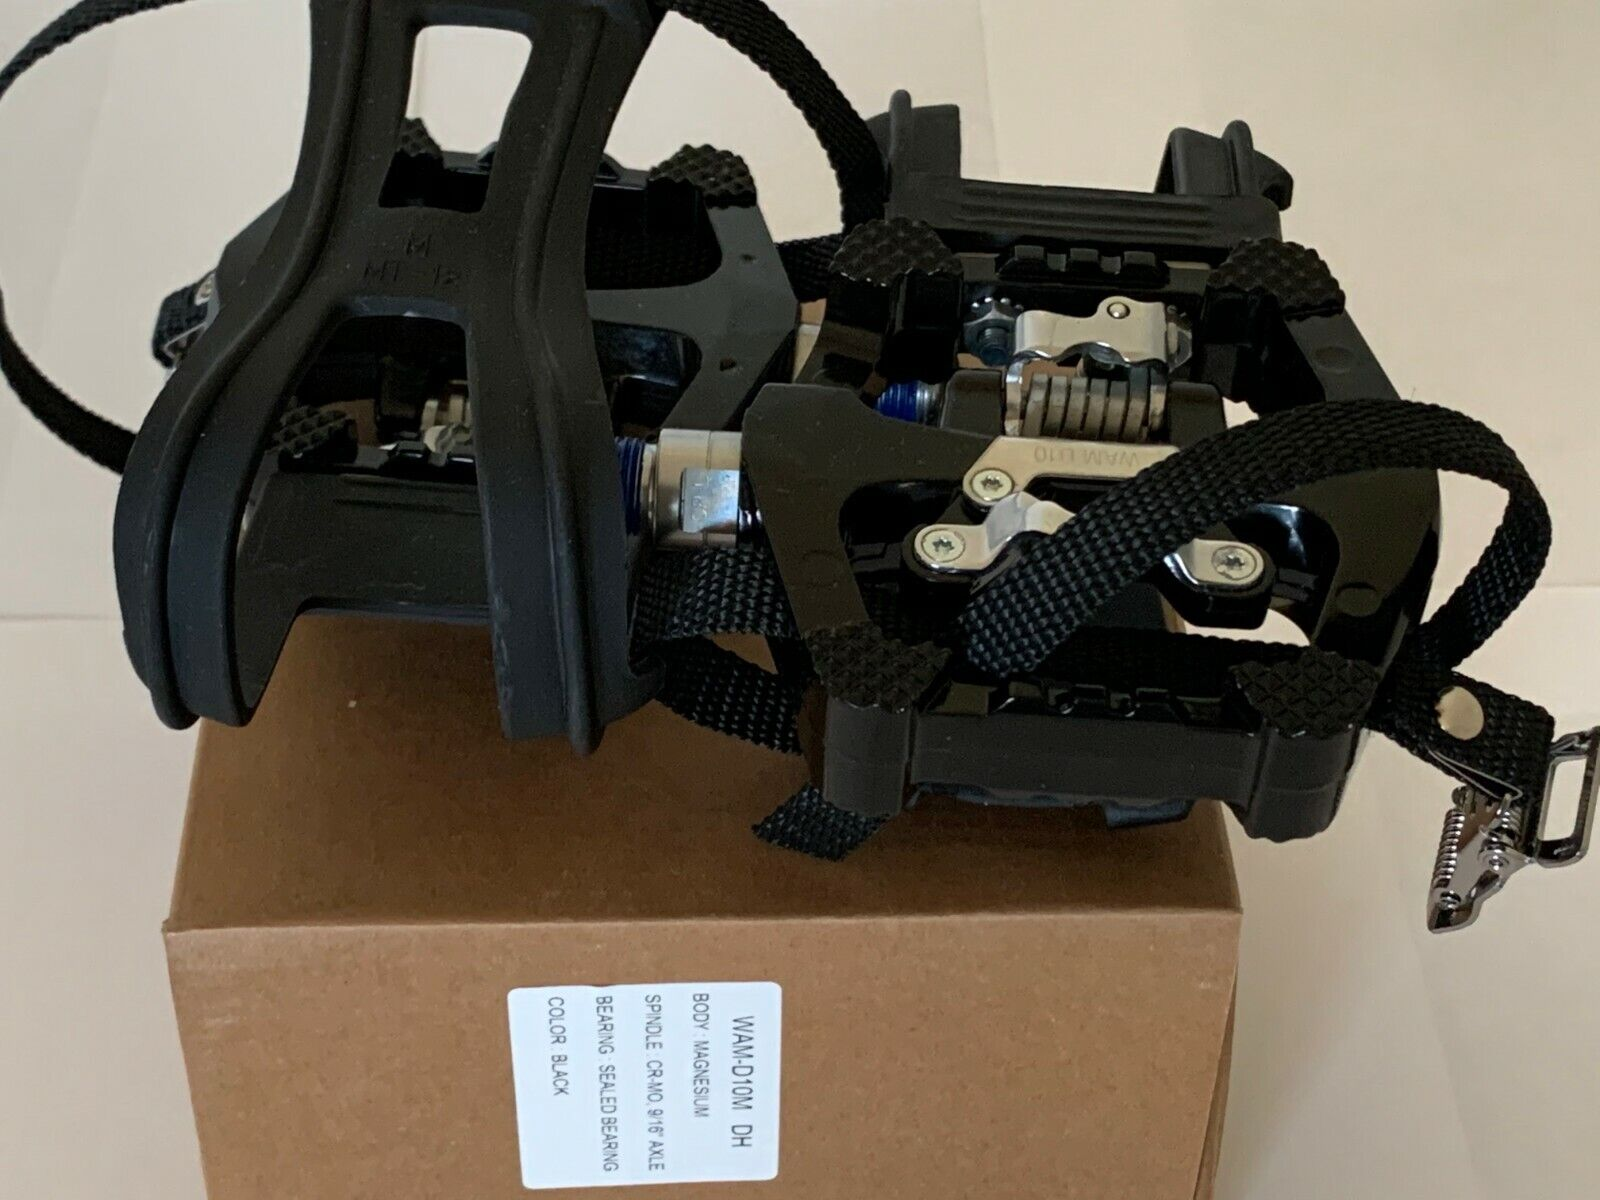 New Stages RPS Pedal Set indoor Cycle SPIN Bike Pedals W/SPD